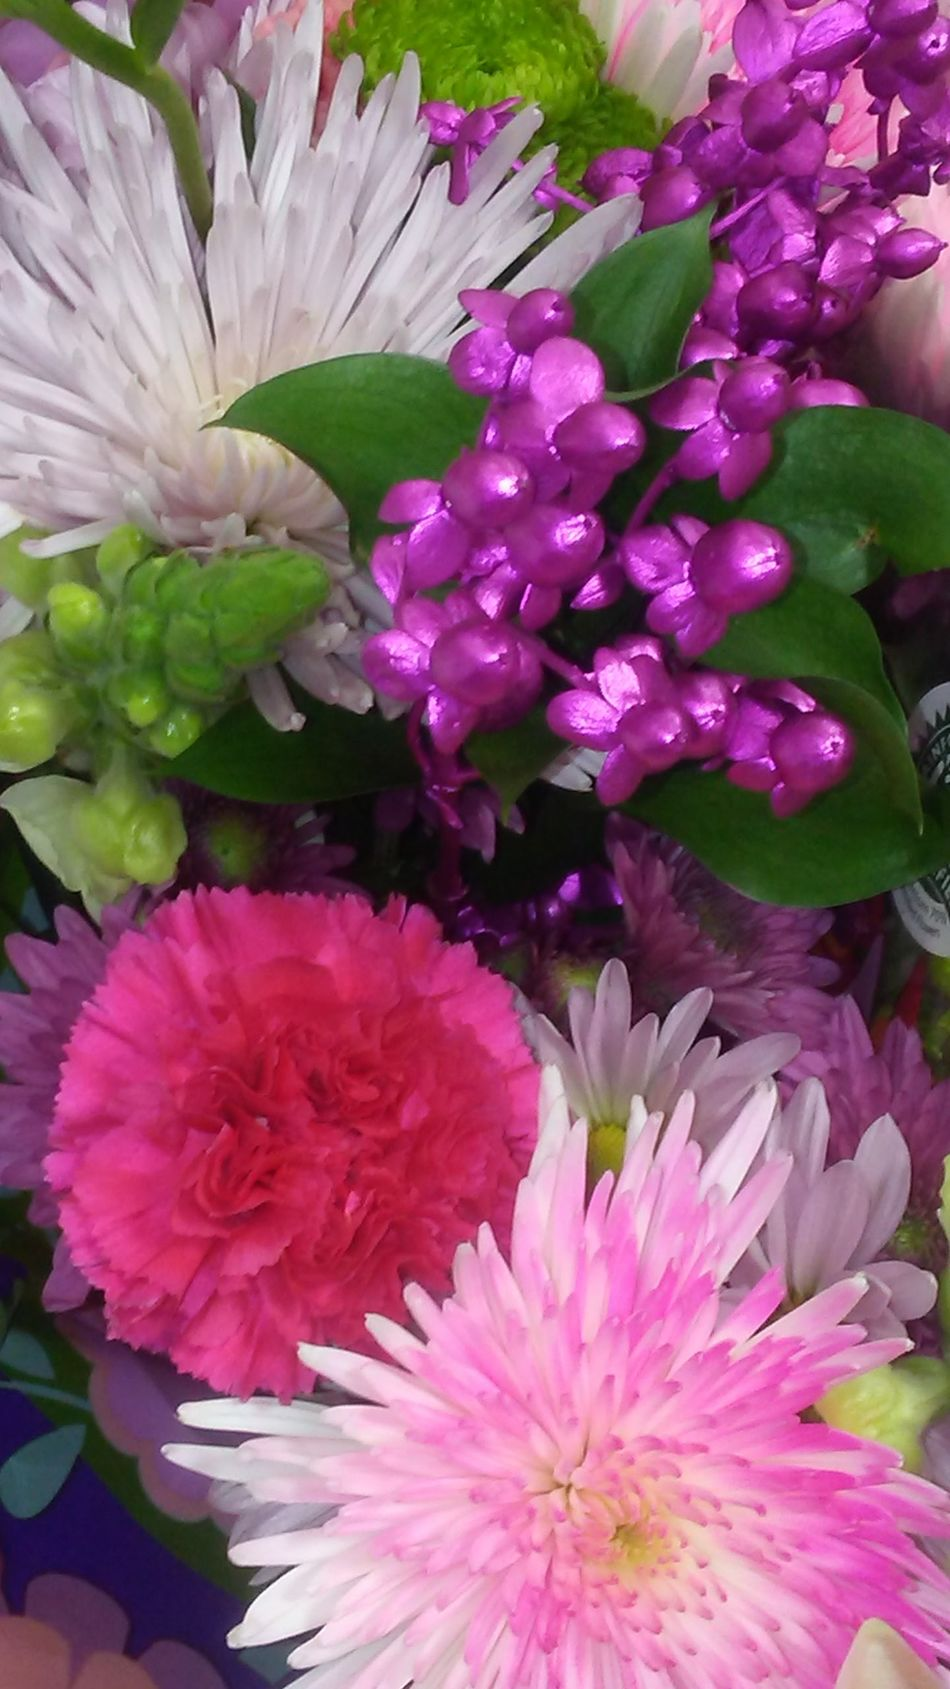 Flower Beauty In Nature Petal Purple Flower Head Pink Color Blooming Backgrounds Close-up Mn